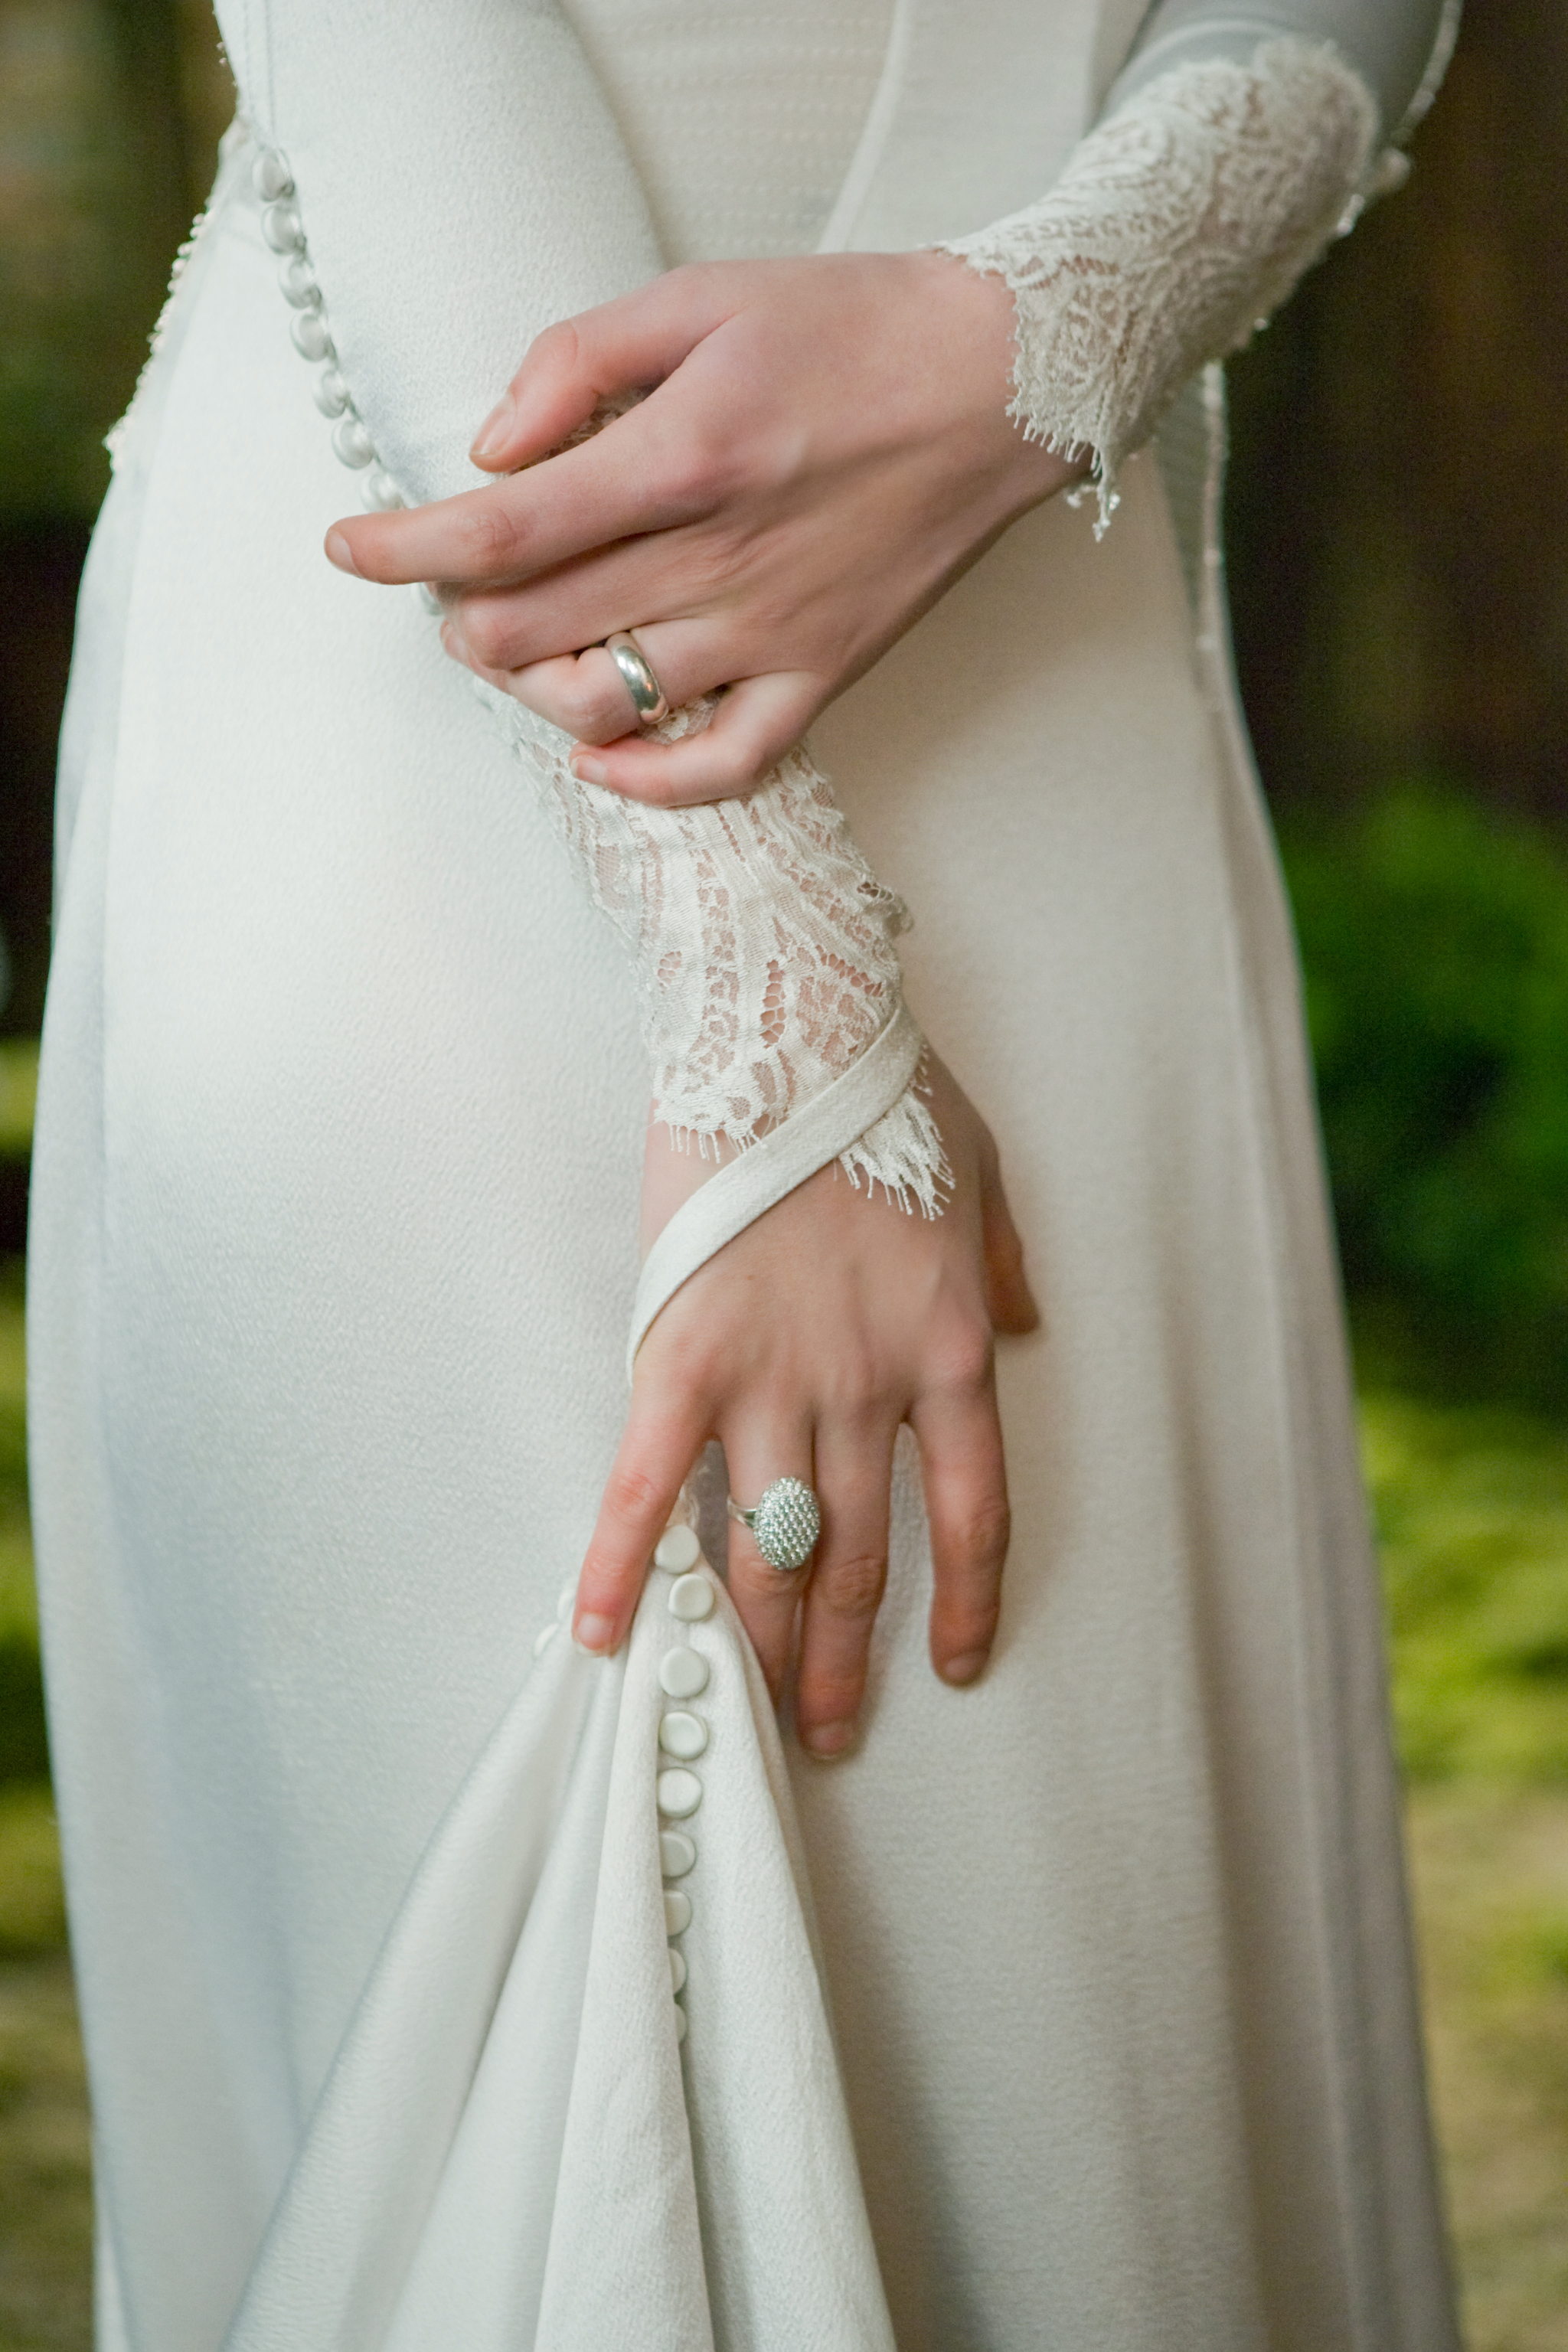 Twilight Breaking Dawn Part 1 Wedding Dress Images Facts